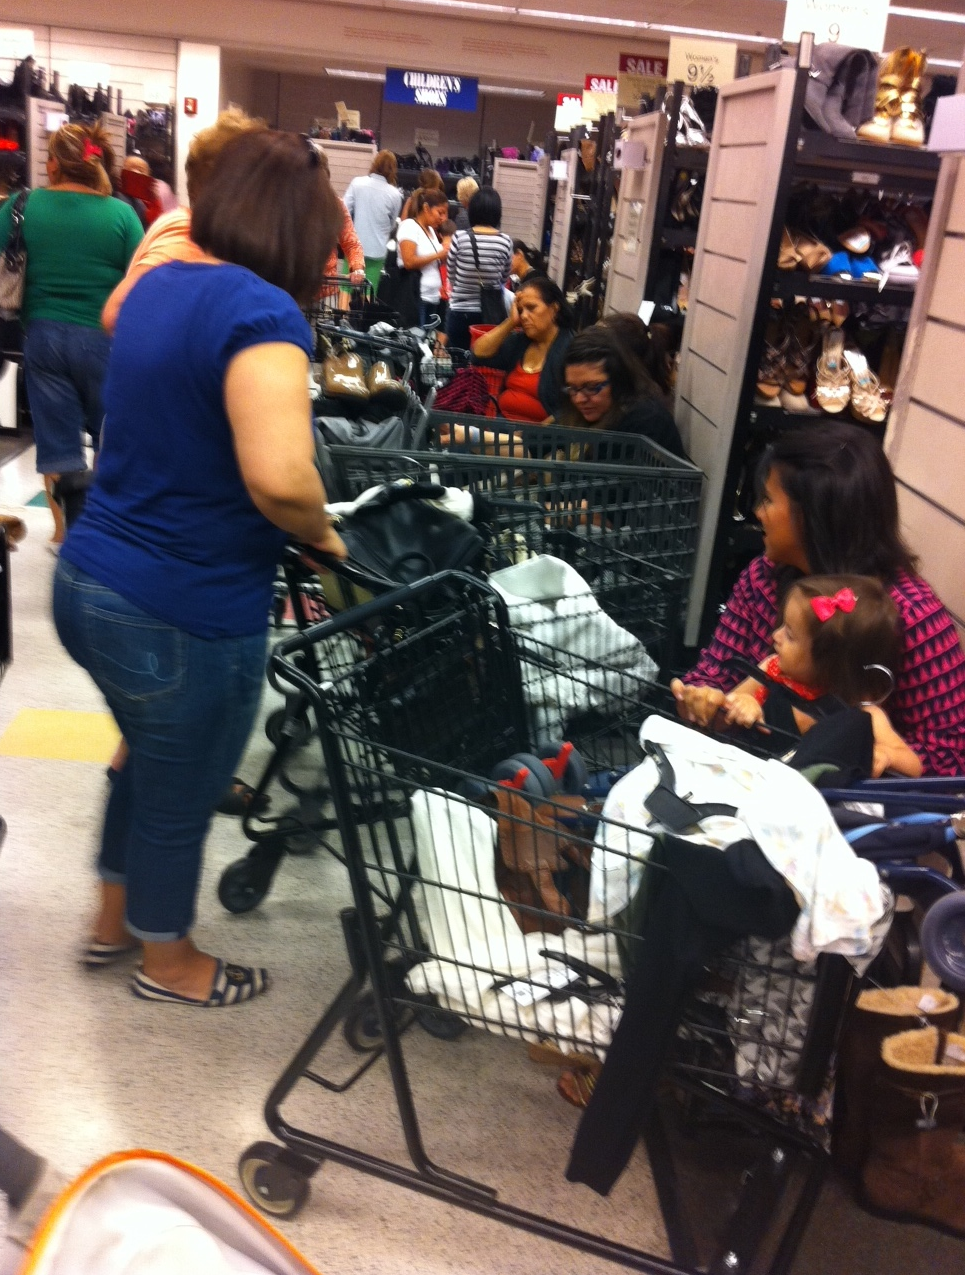 It is gridlock in the store as everyone has a cart and the aisles are narrow.